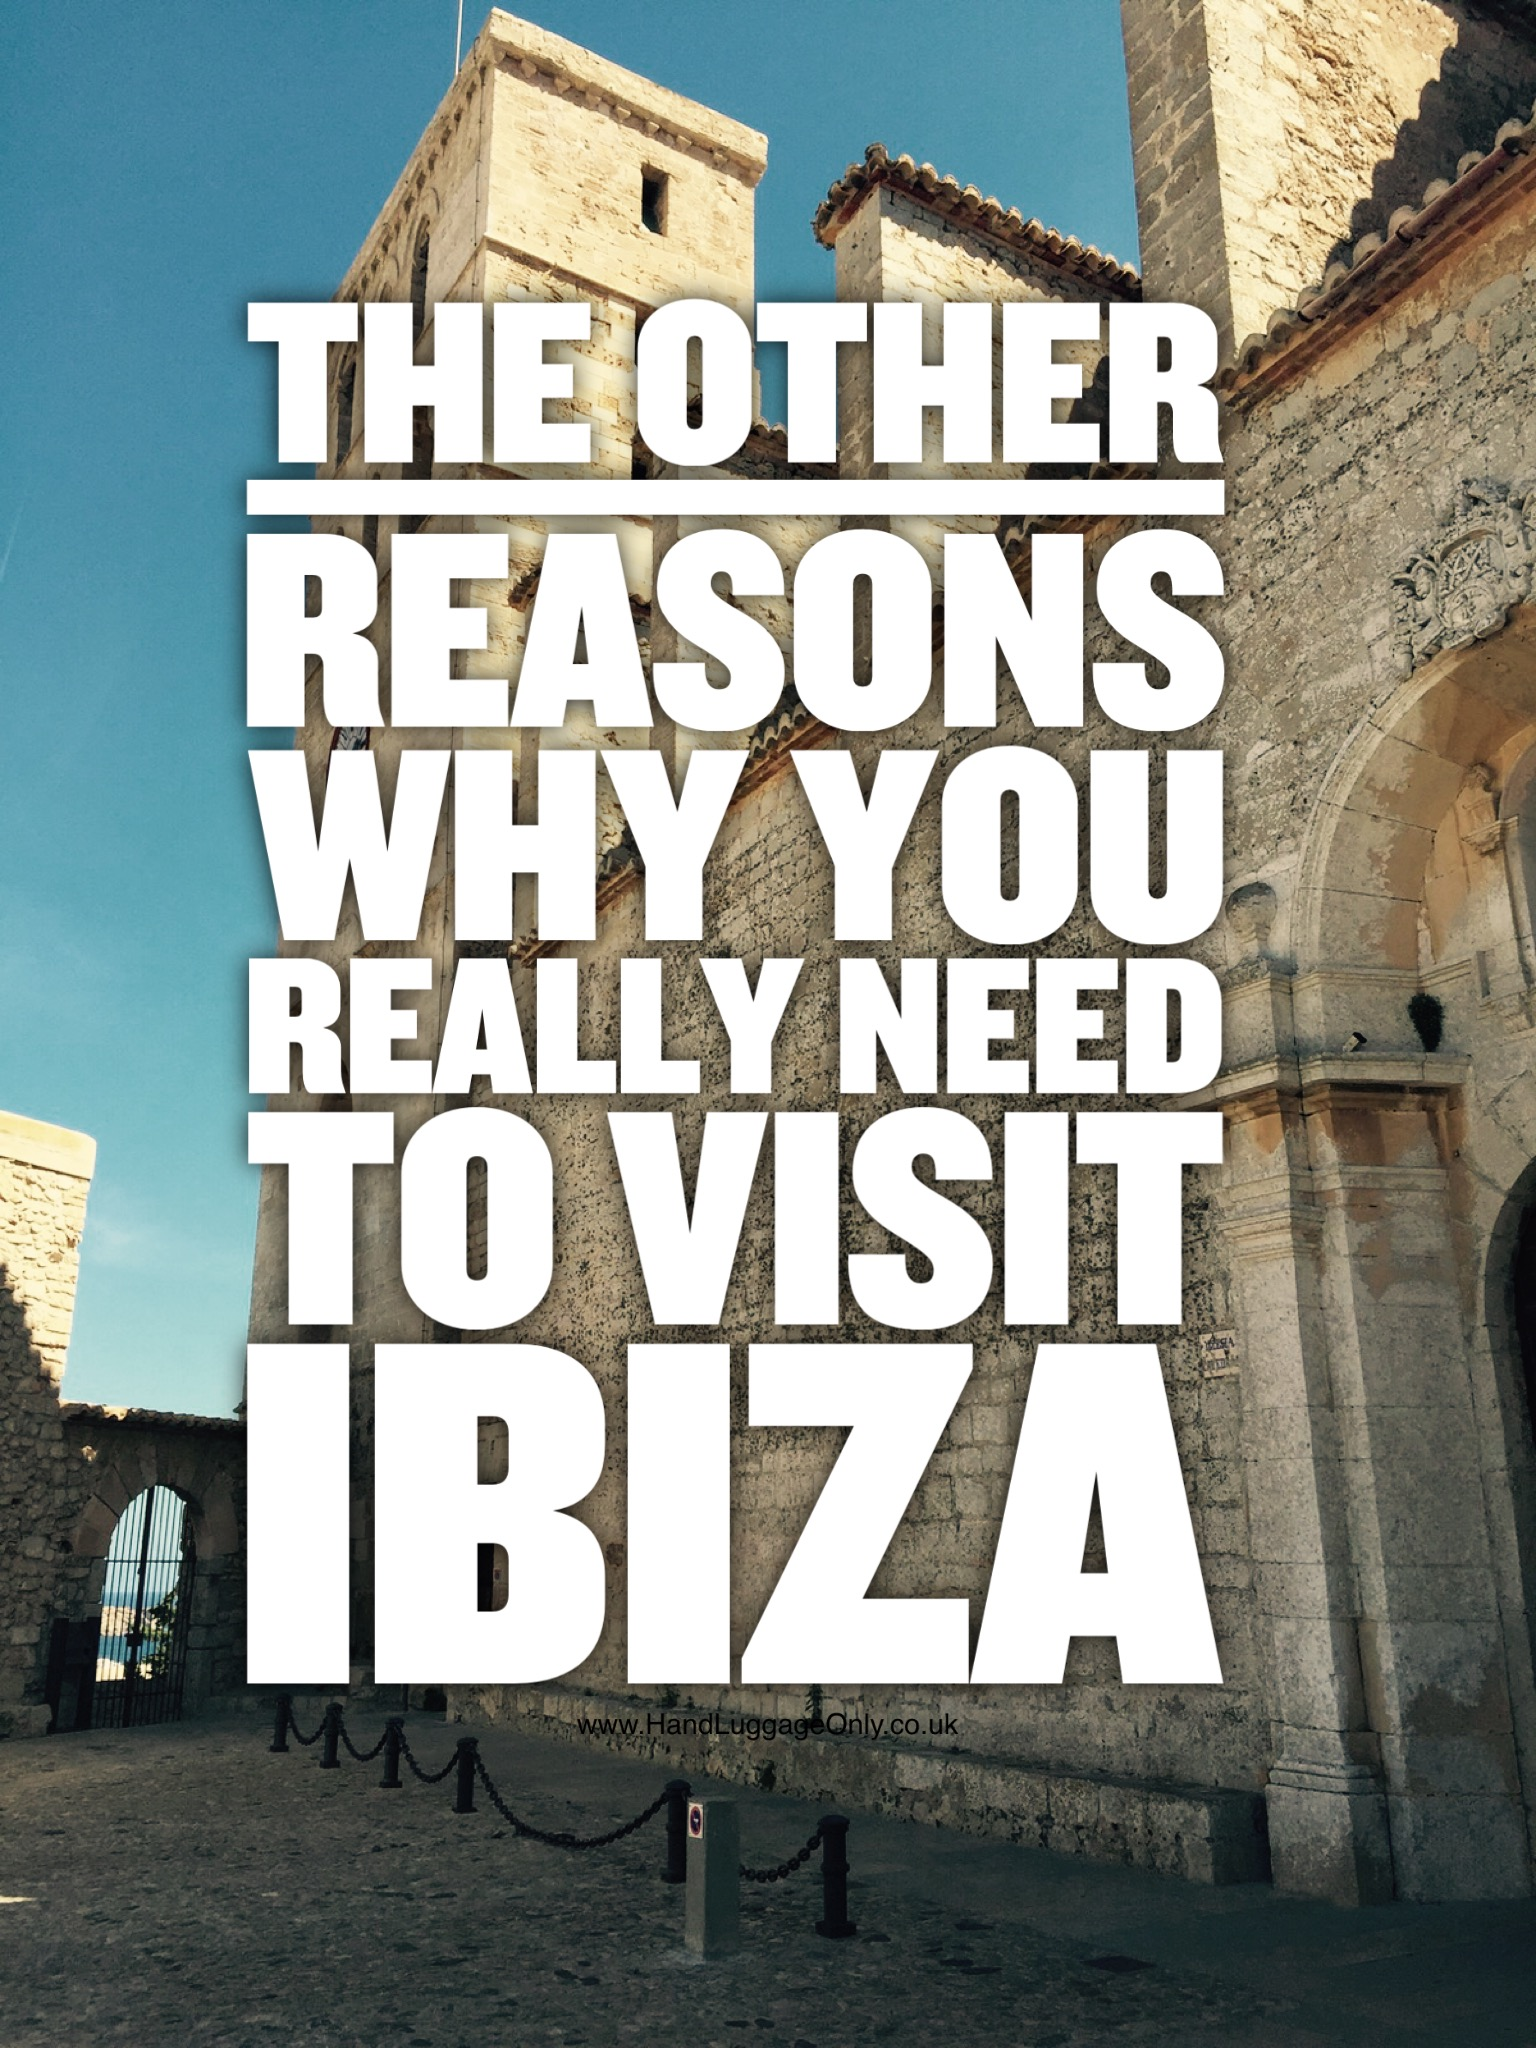 These are the other reasons why you really need to visit Ibiza